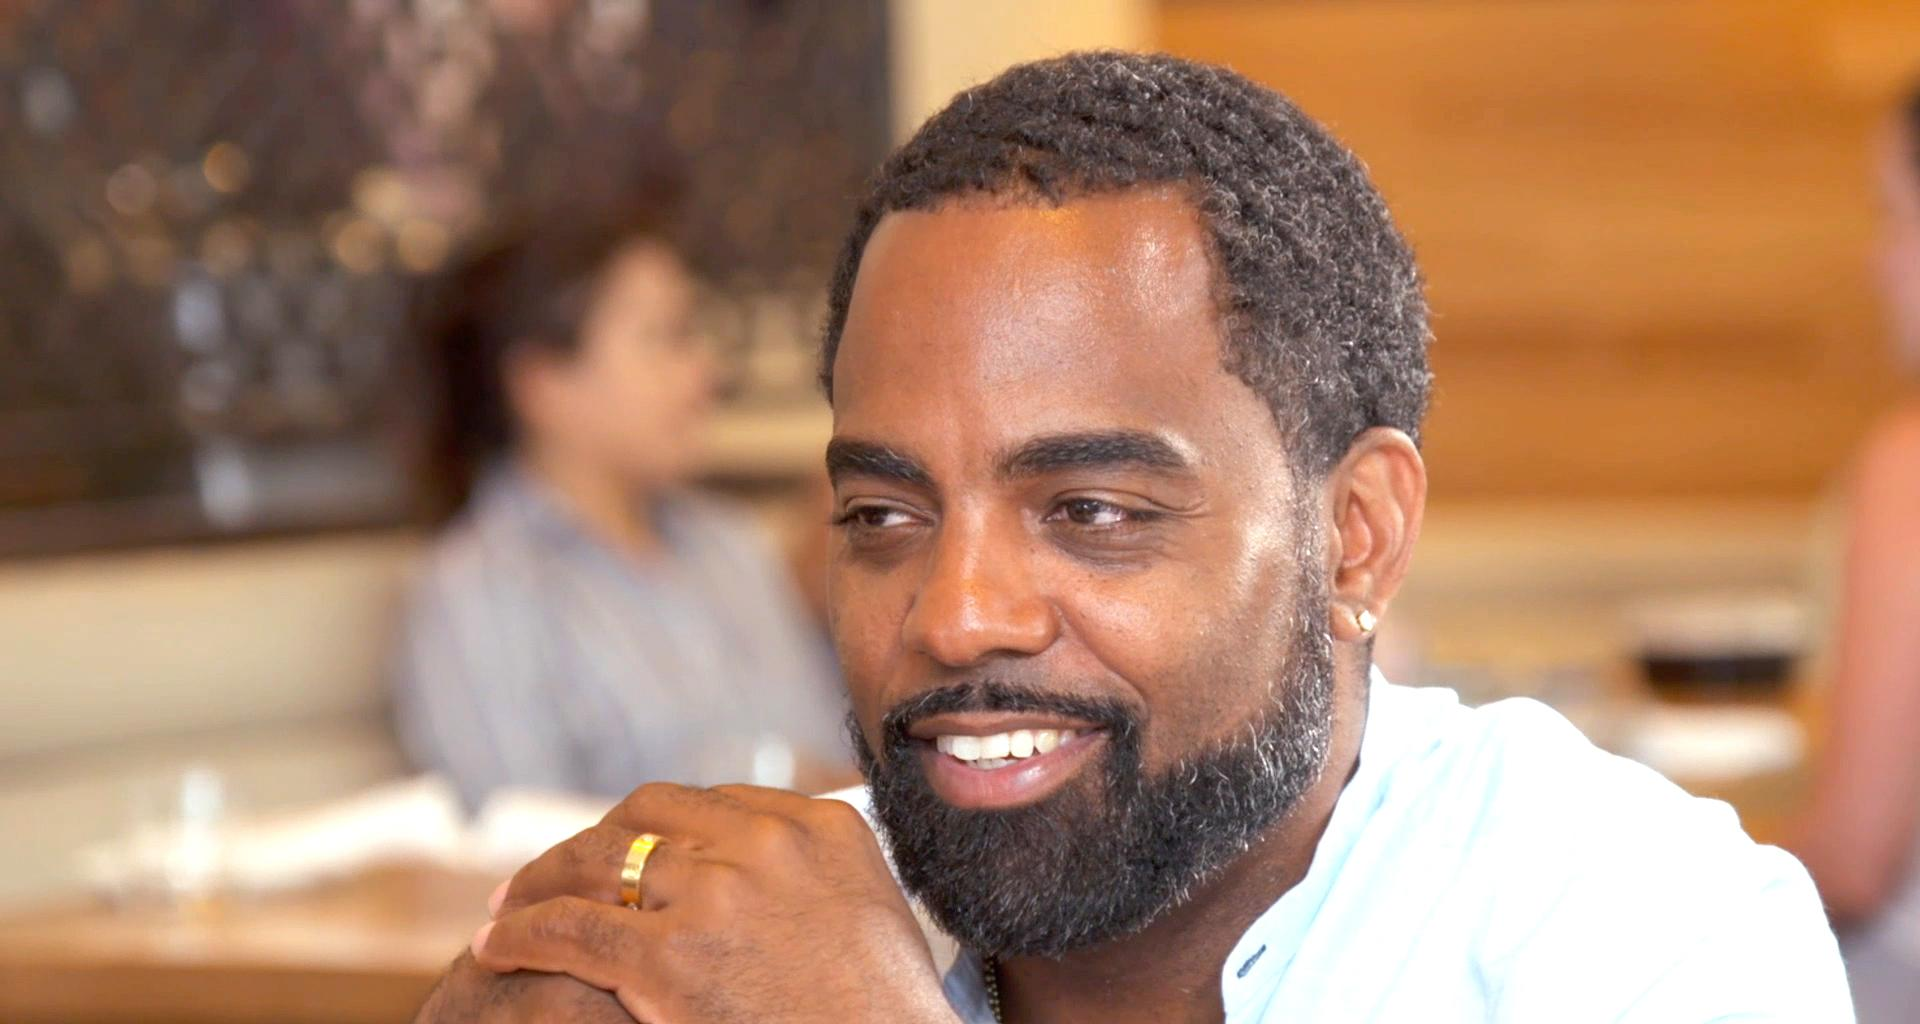 Todd Tucker Announces New Acting Classes And Coaching - See The Video